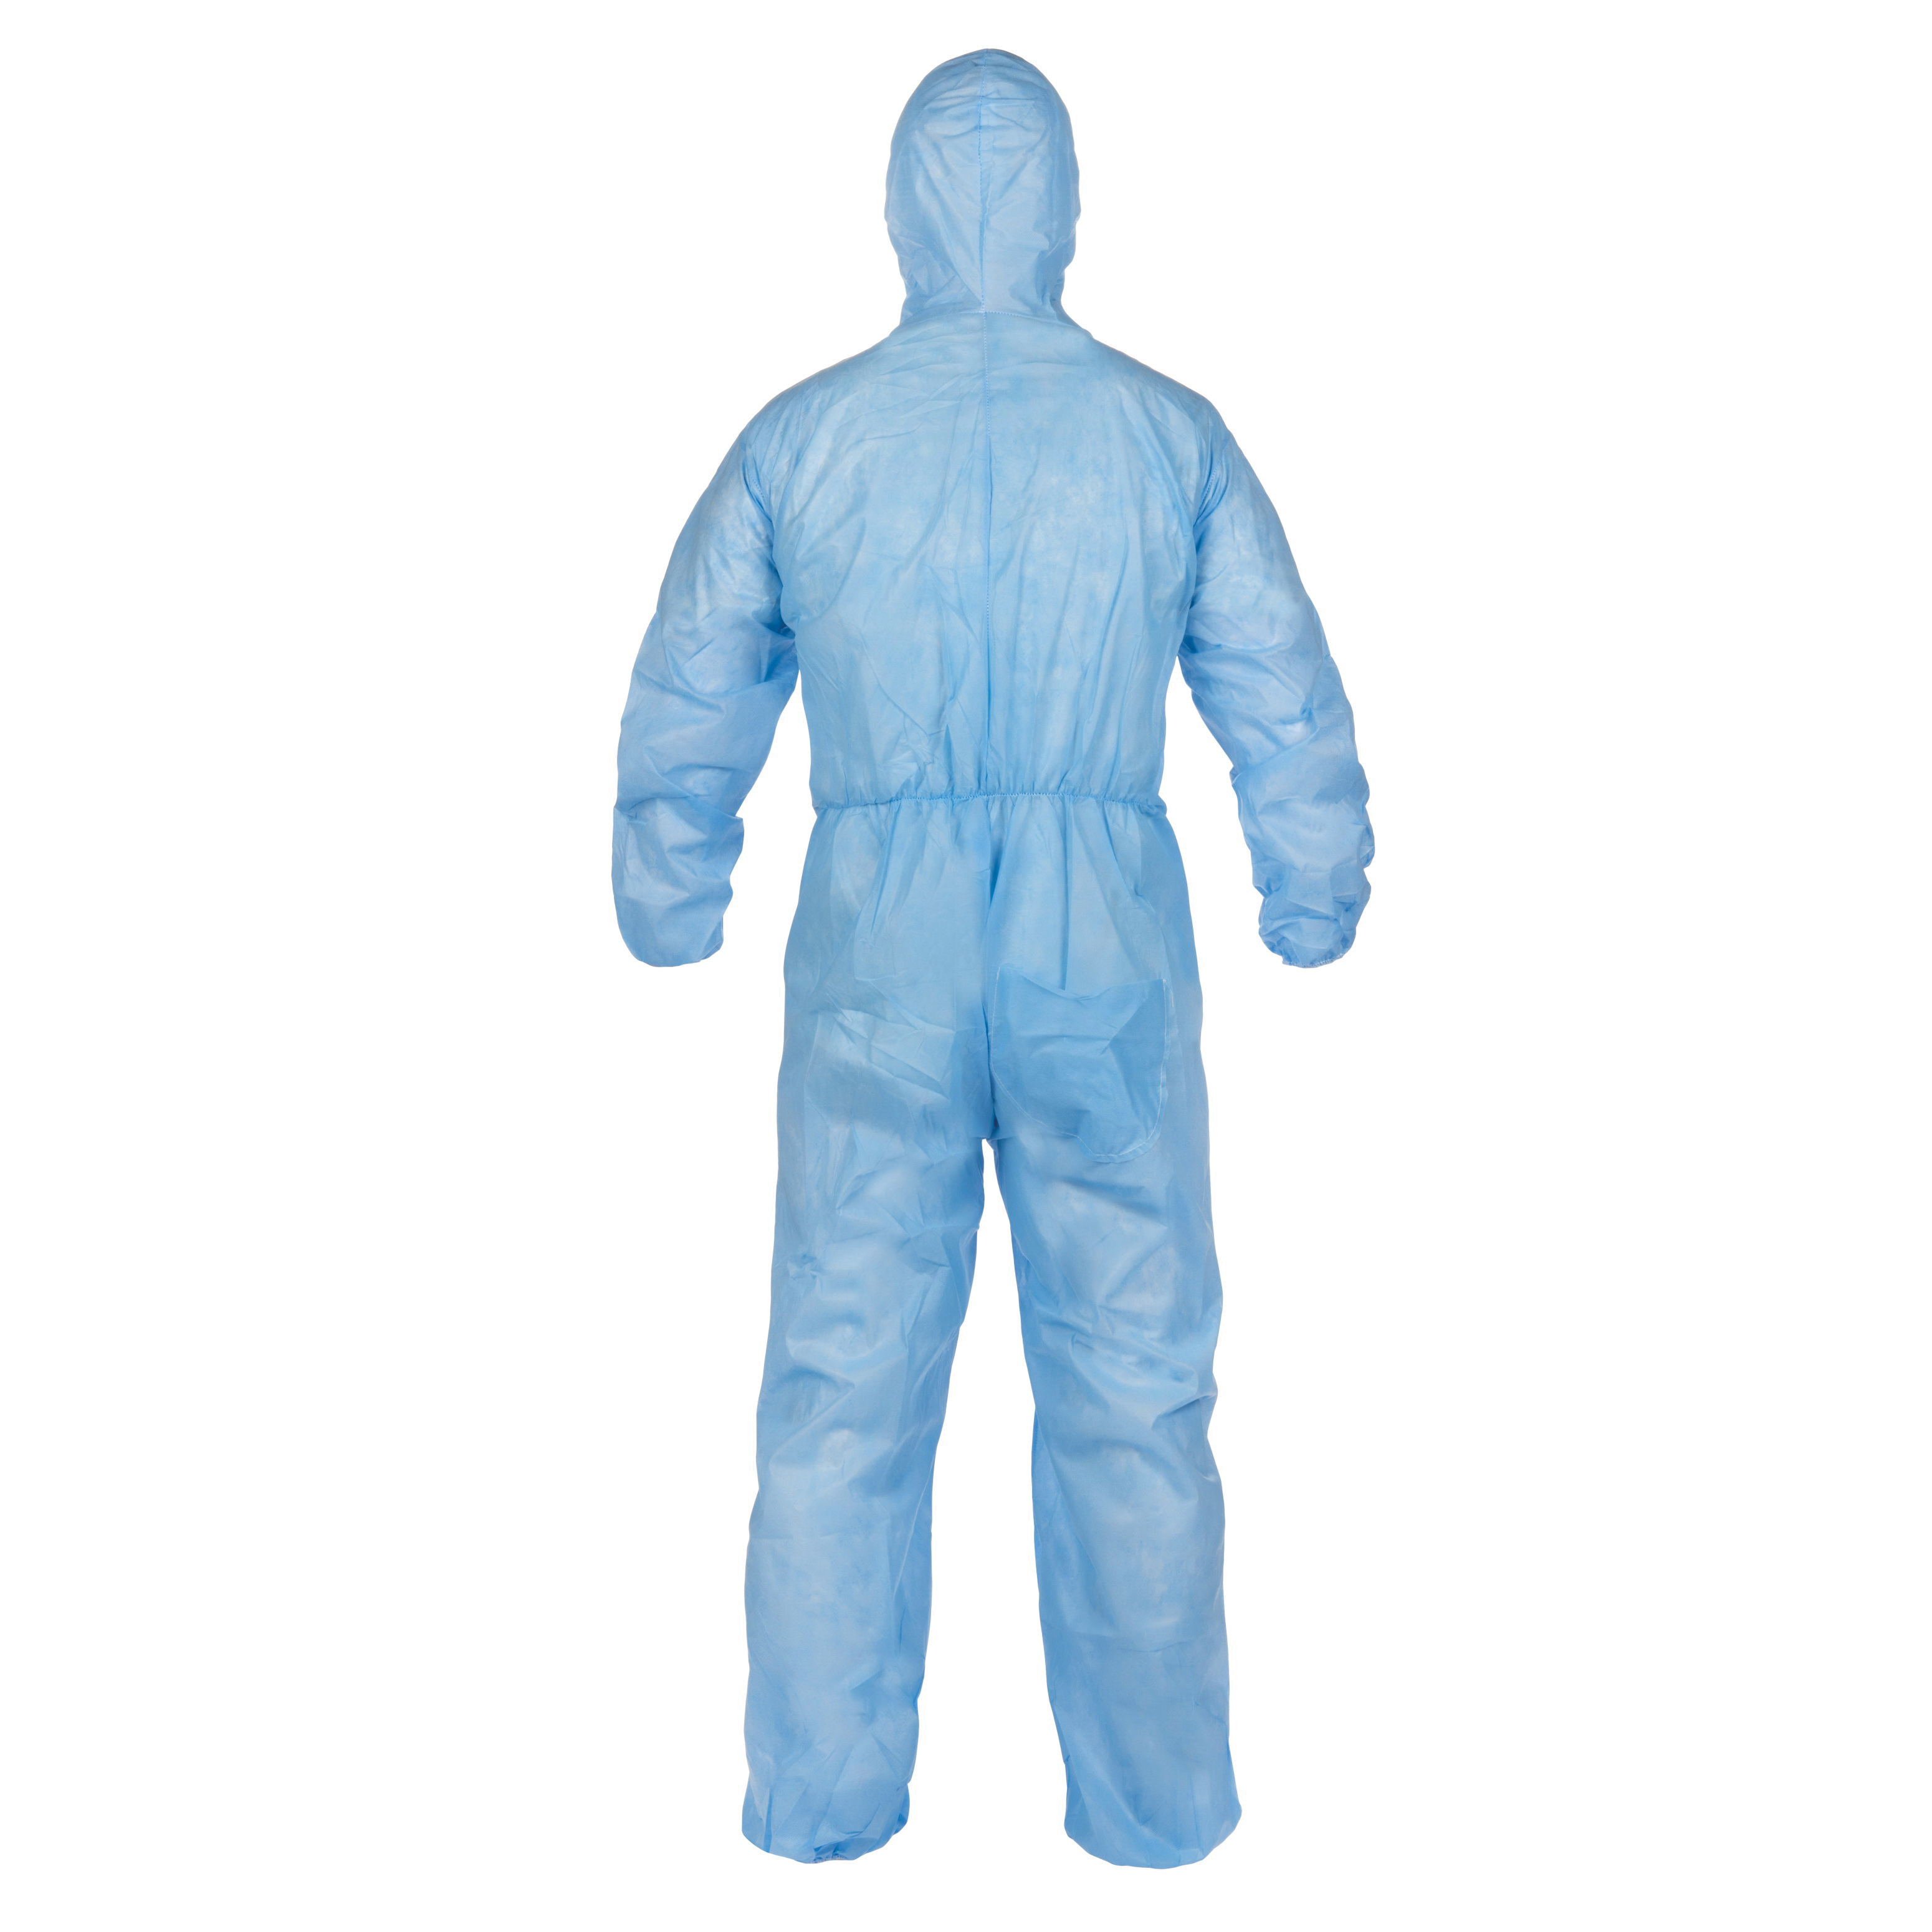 Lakeland® 07428B-2XL Disposable Coverall With Elastic Ankle and Elastic Wrist, 2XL, Blue, Pyrolon® Plus 2, 52 to 54 in Chest, 29 in L Inseam